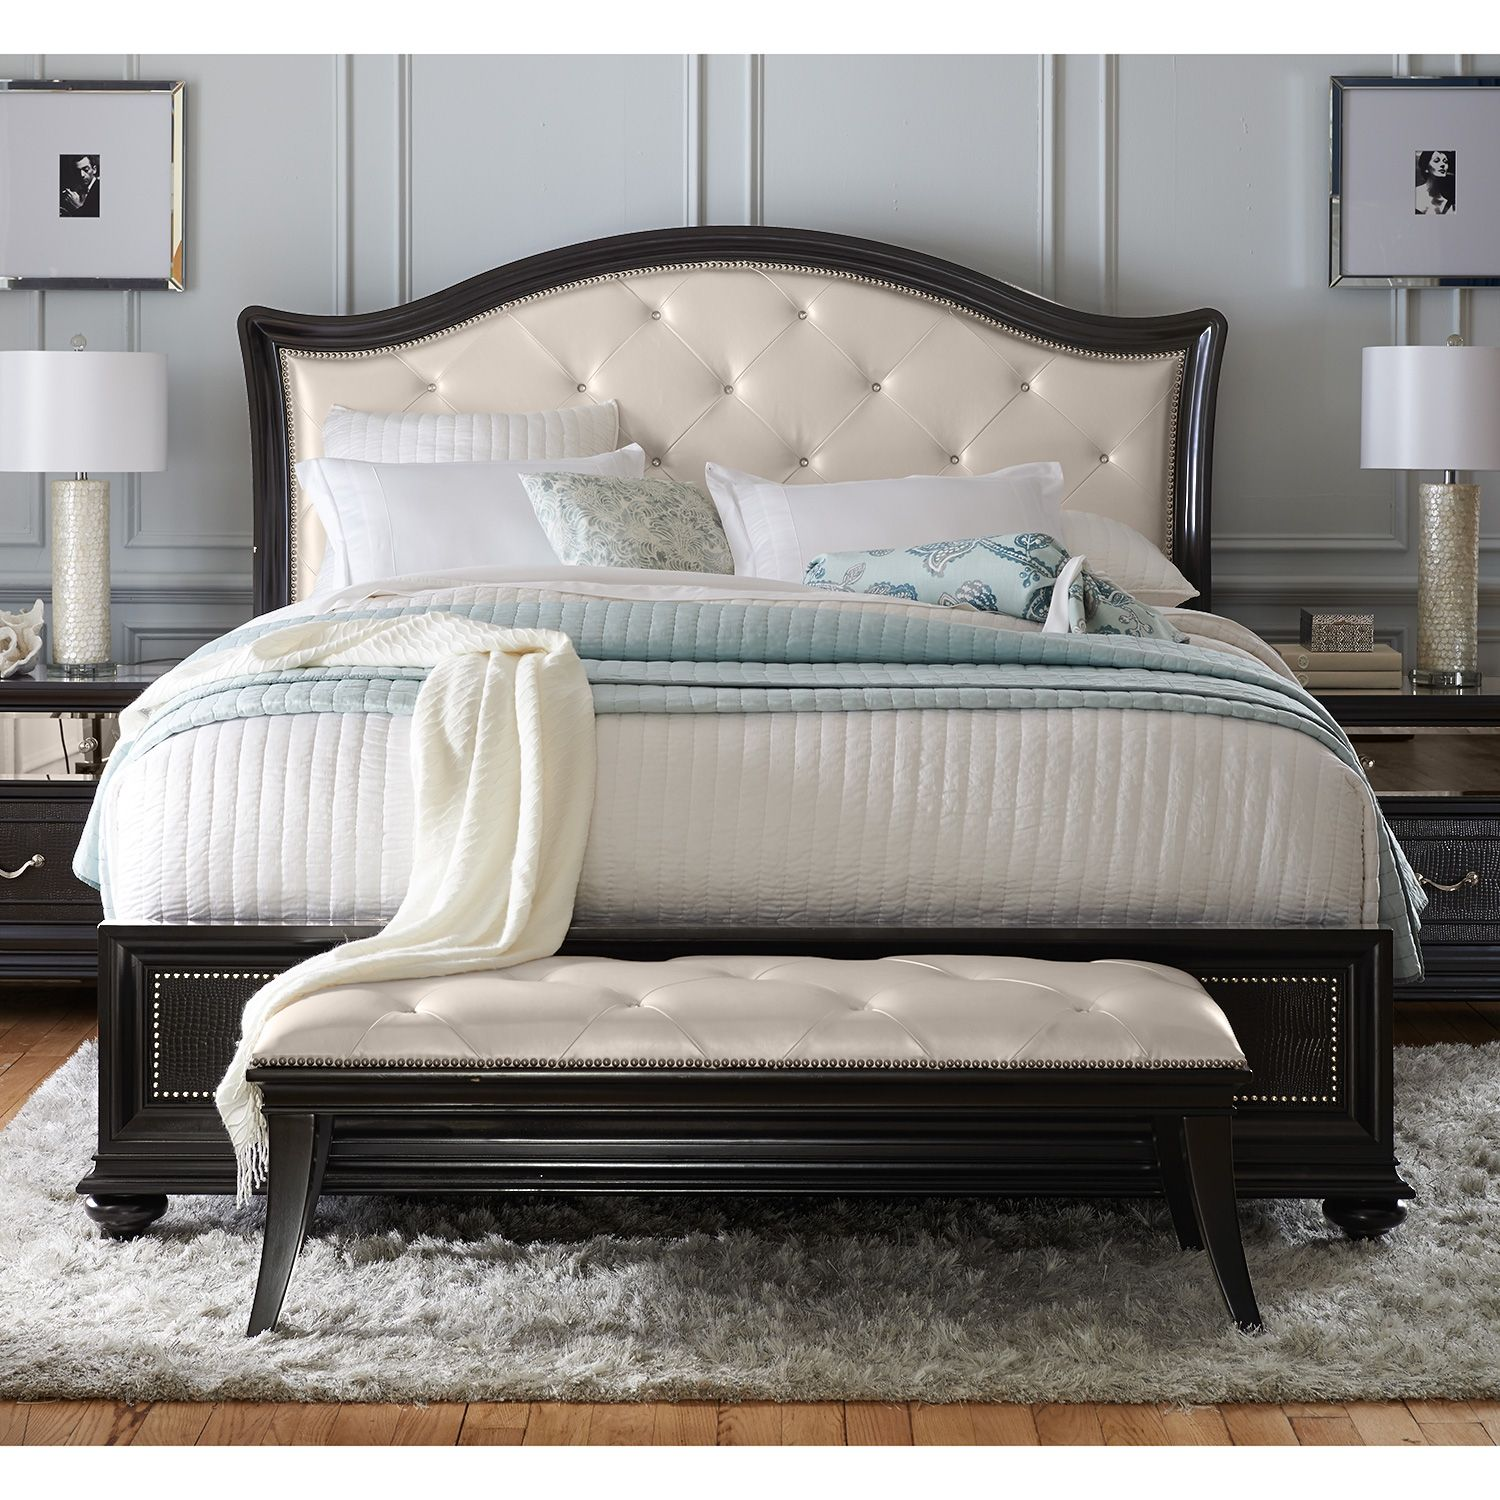 Marilyn Queen Bed | American Signature Furniture | My House ...